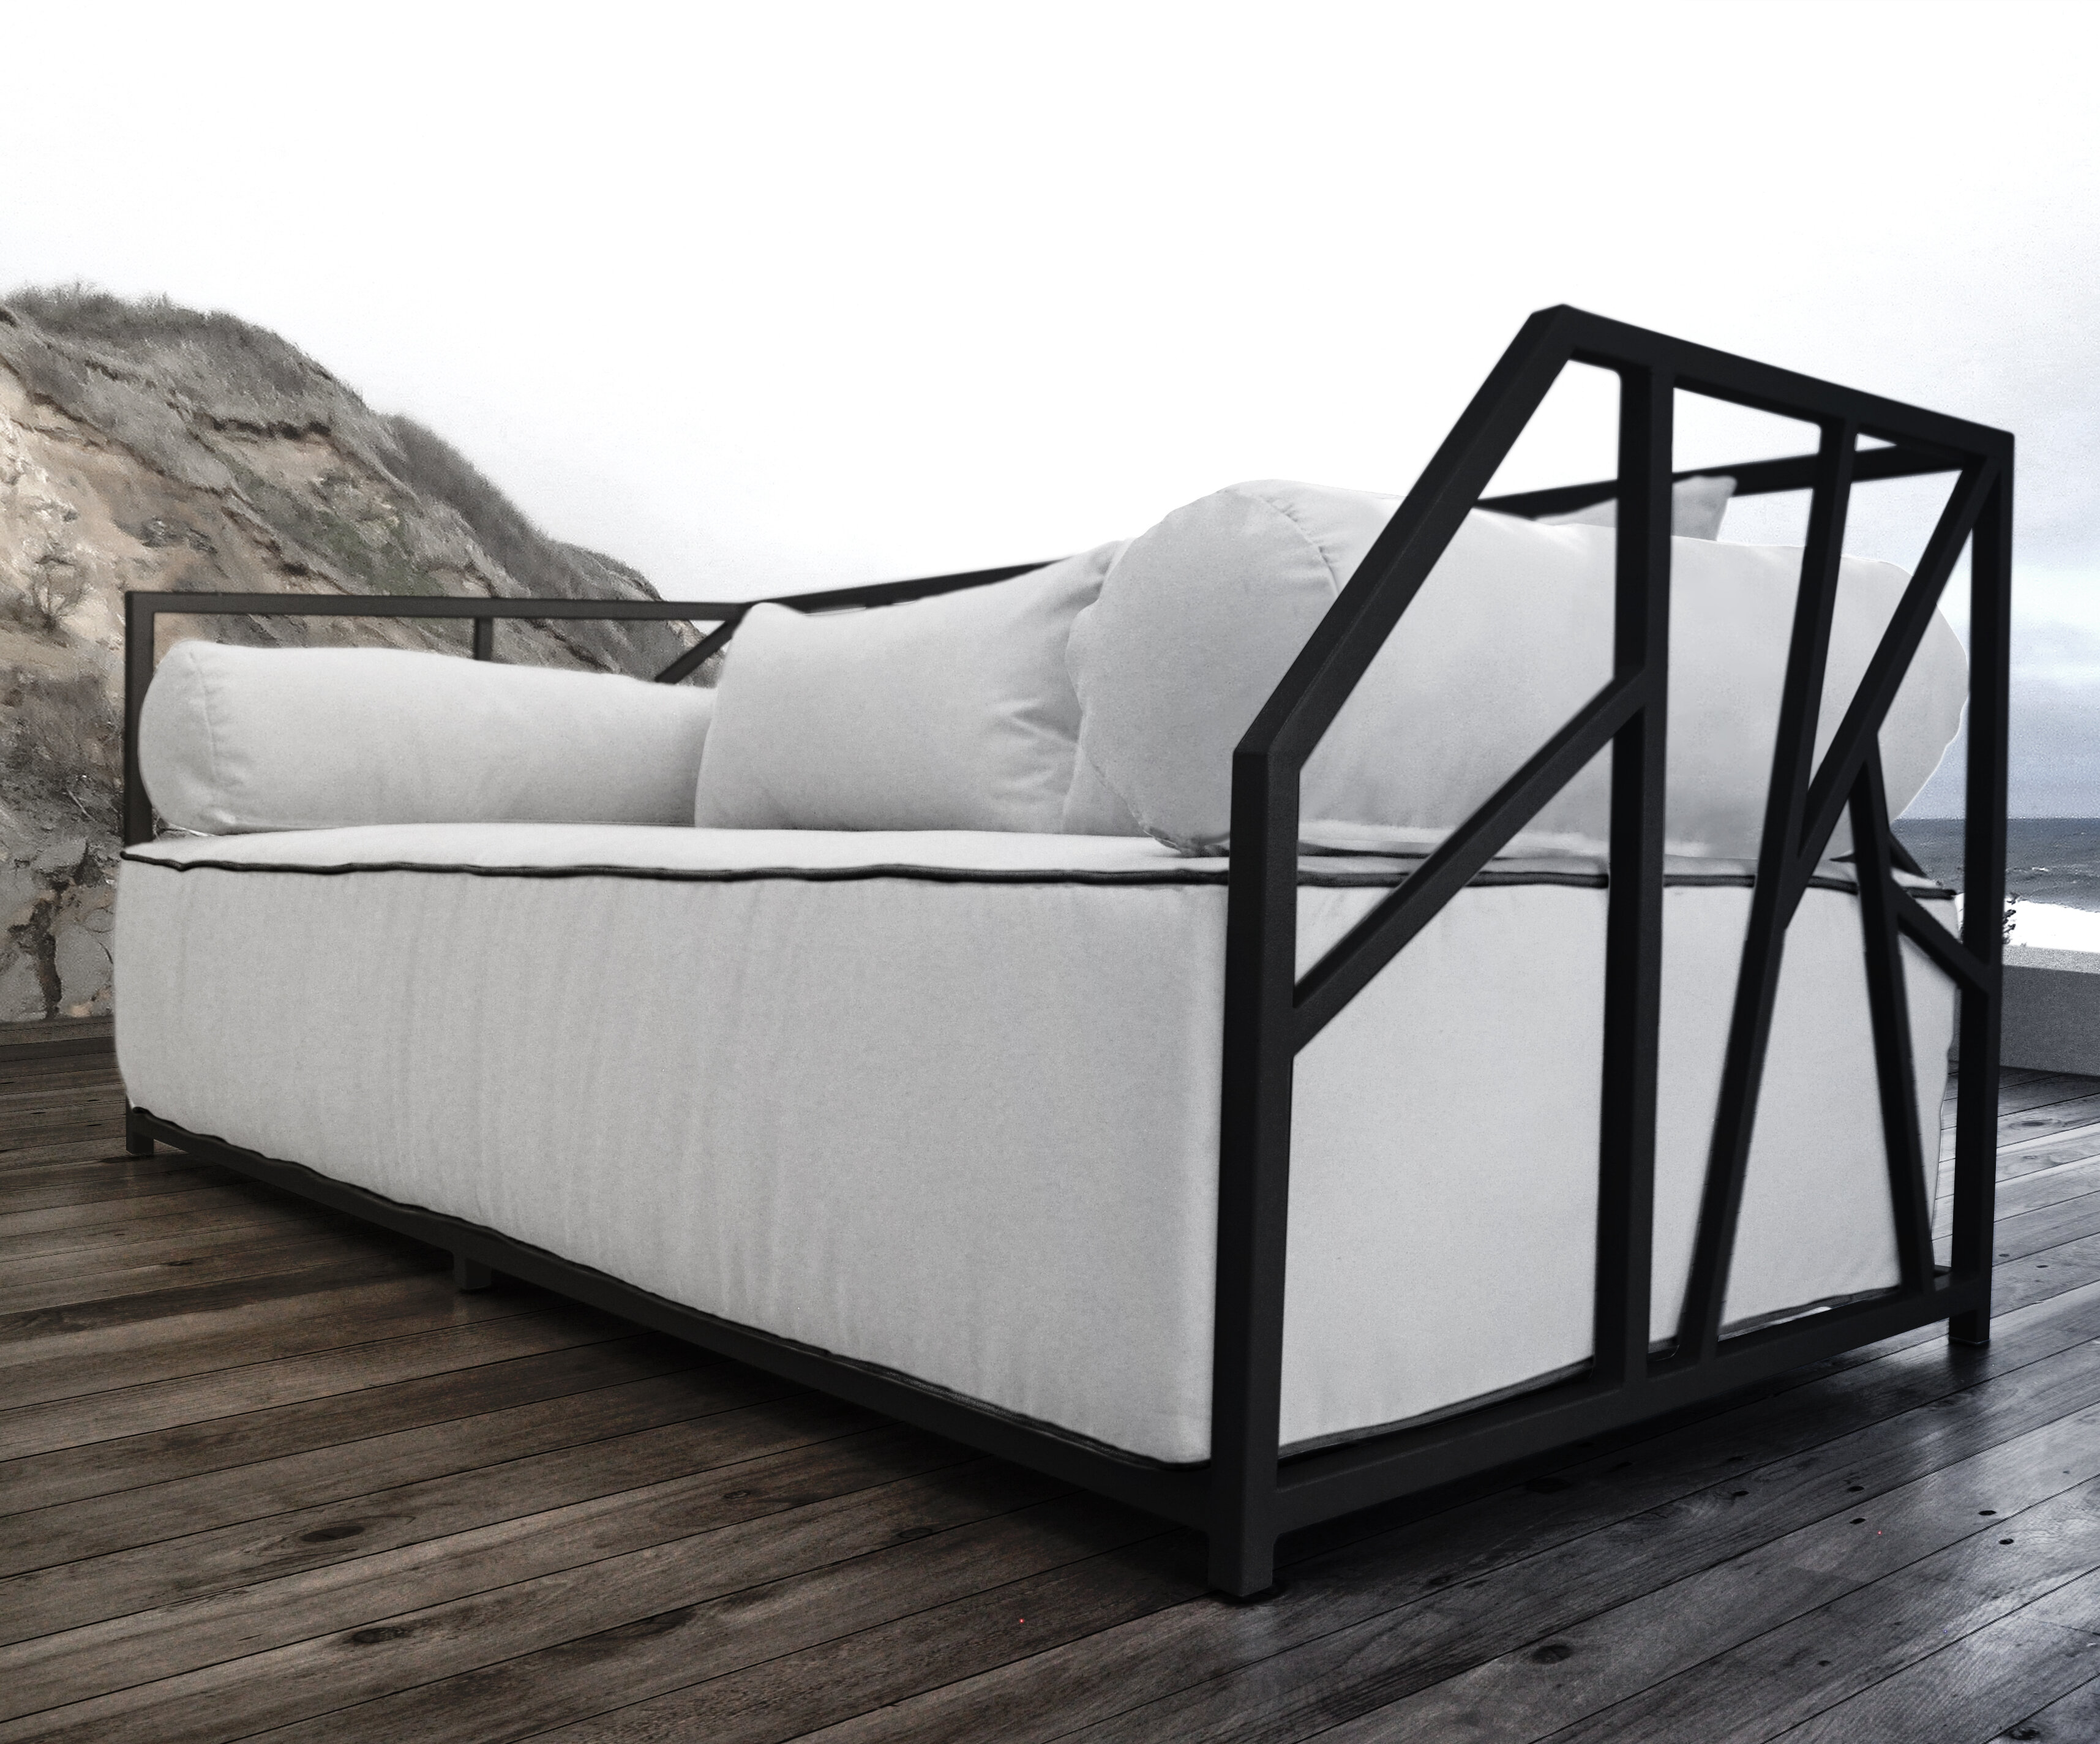 contract luxury elana hospitality daybed furniture couture outdoor loveseat hotels love product woven pool spas rope patio seat stellar